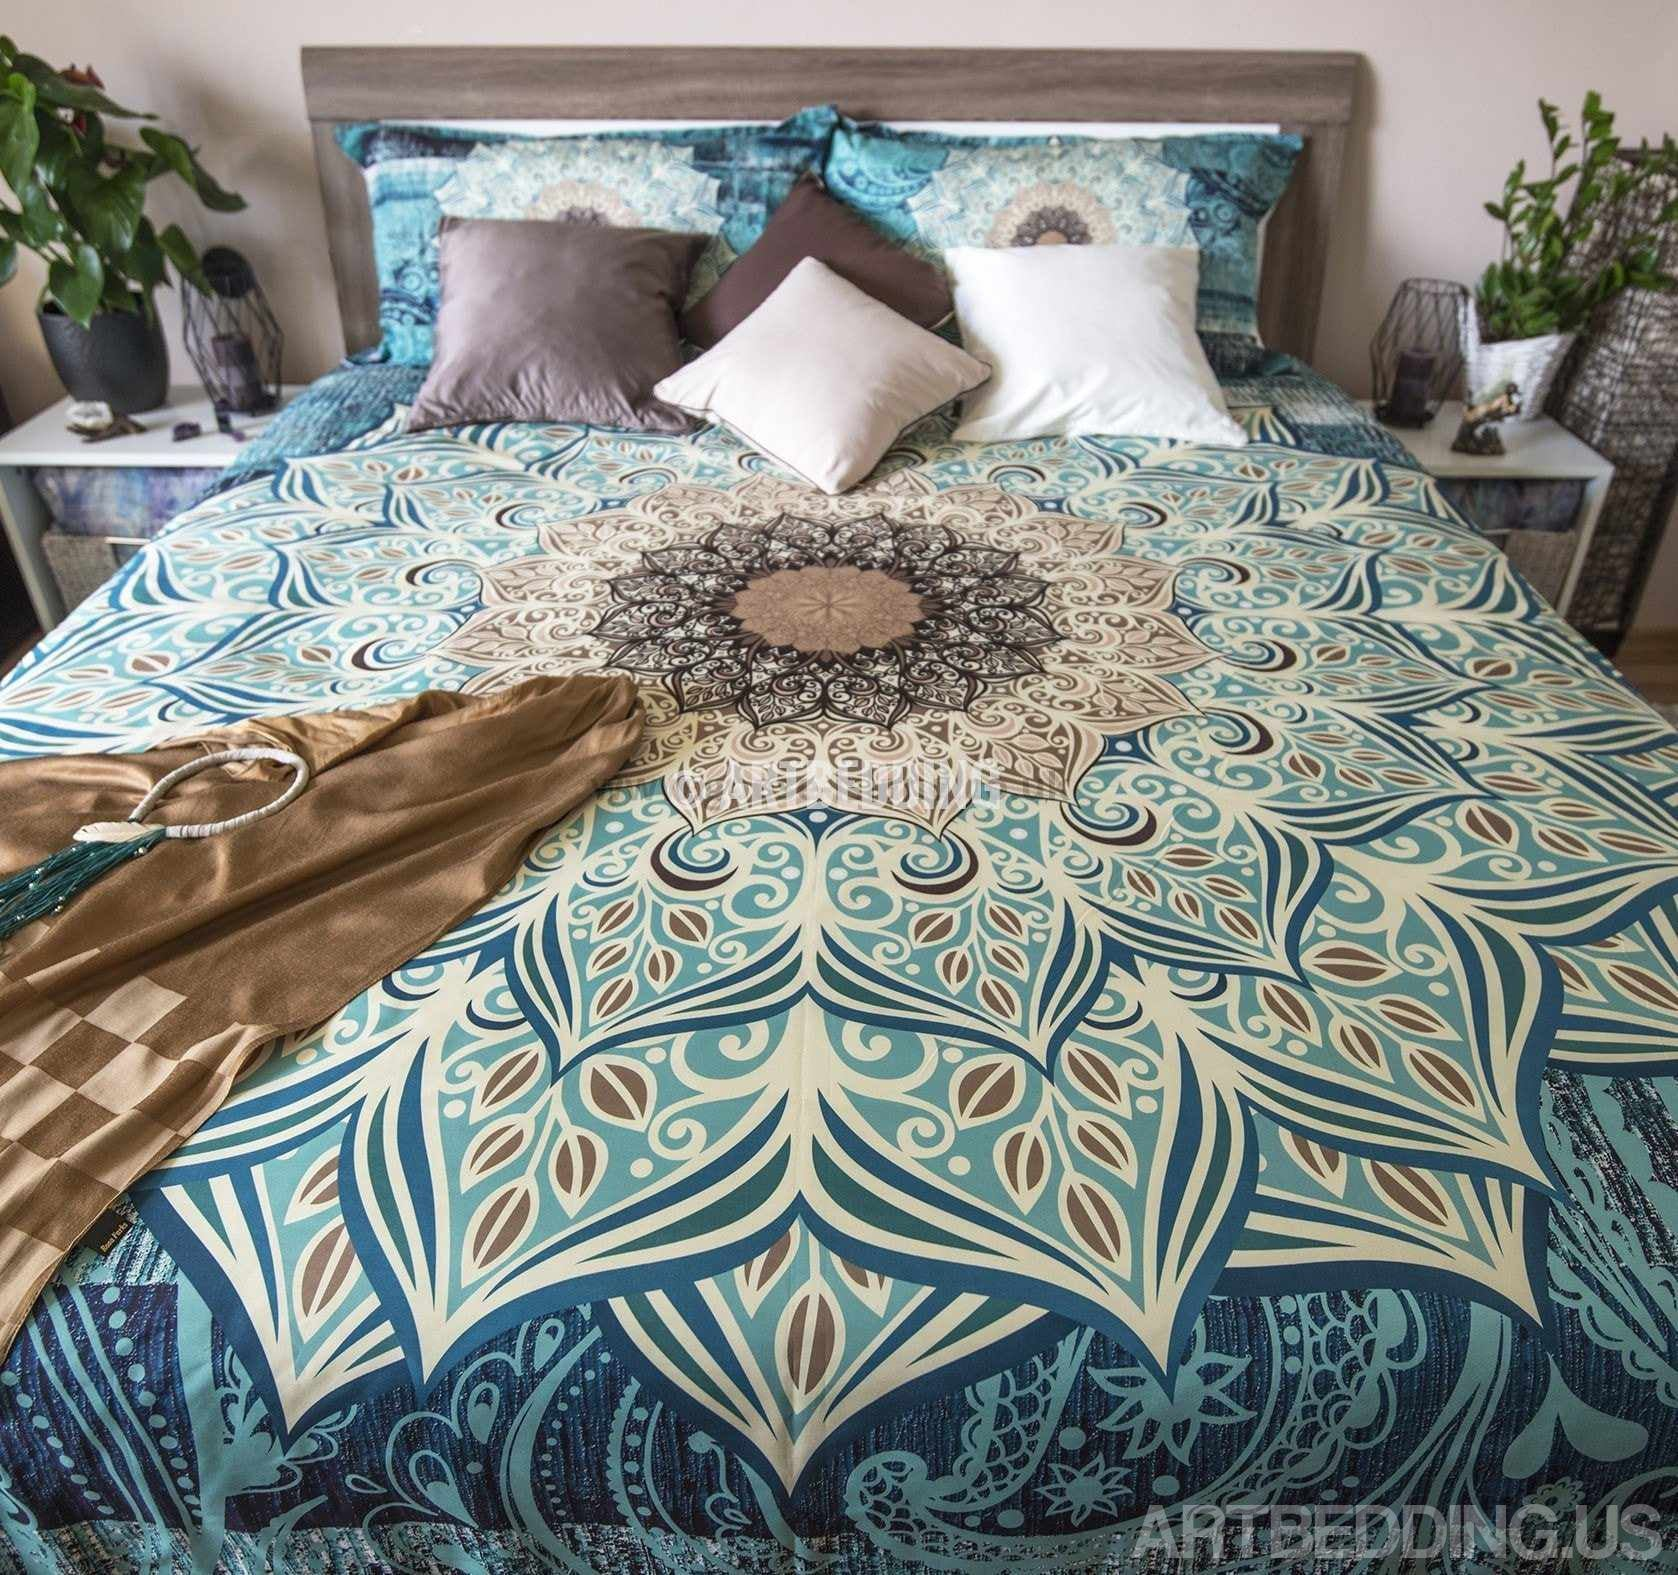 bohemian size martha bedding country barbara stewart of set twin full comforter uk boho palm duvet barry style coverlet covers tree lacoste